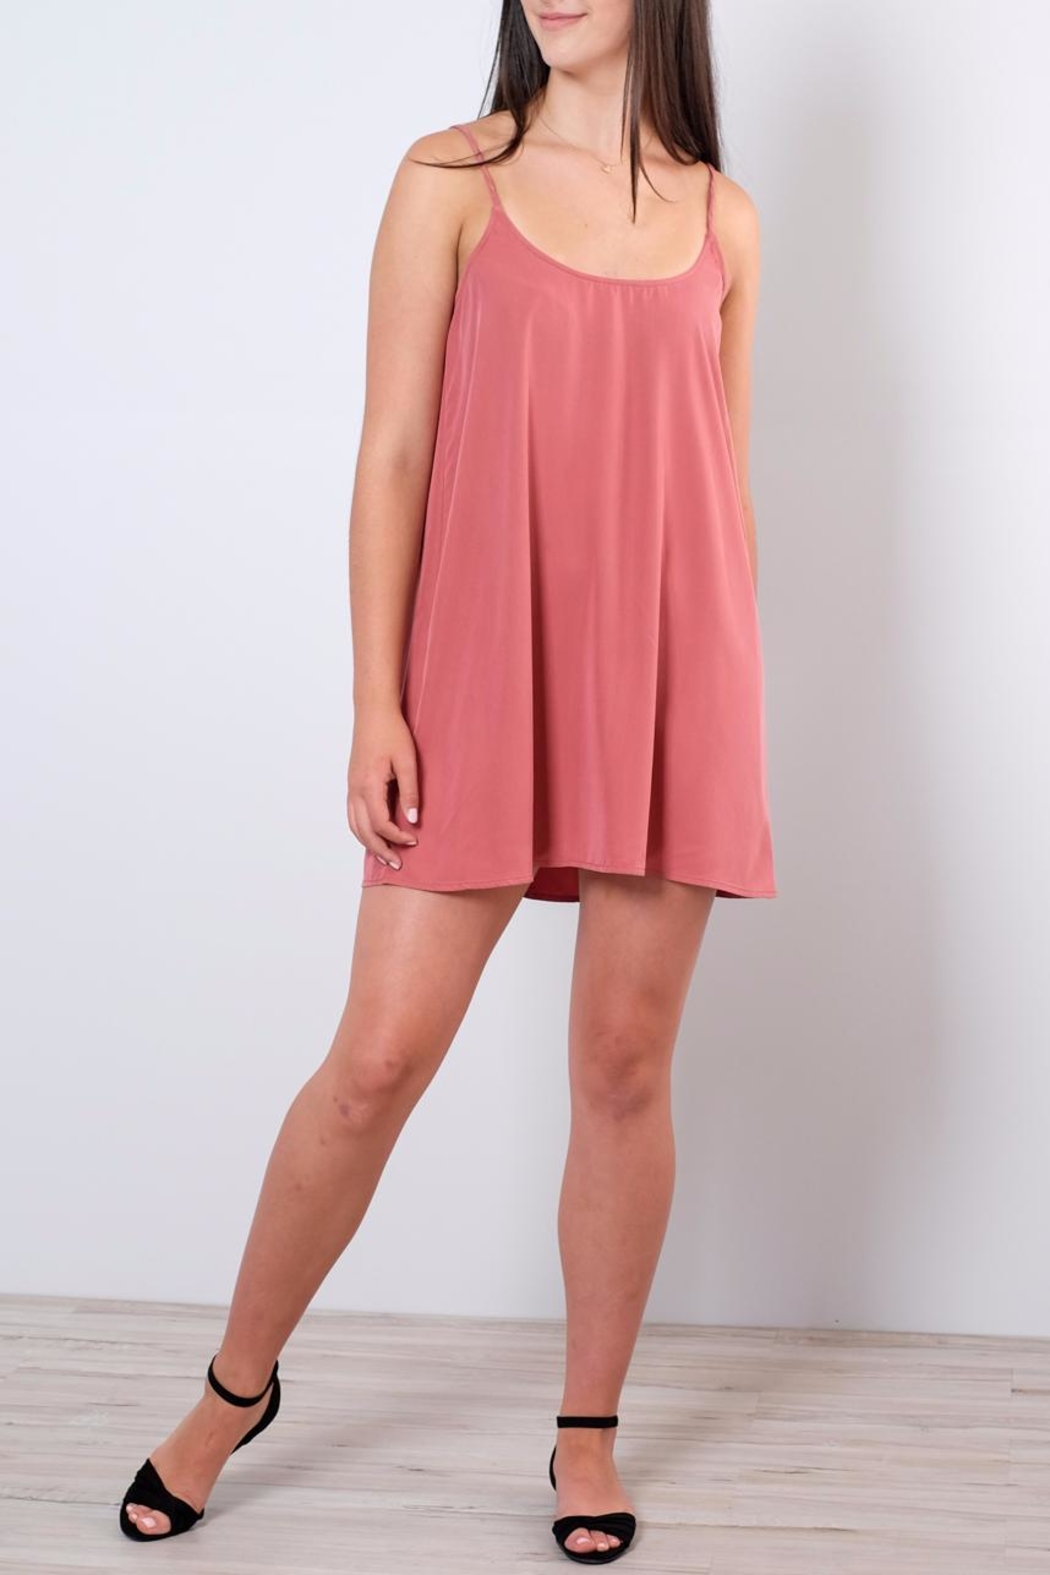 rokoko Relaxed Slip Dress - Main Image